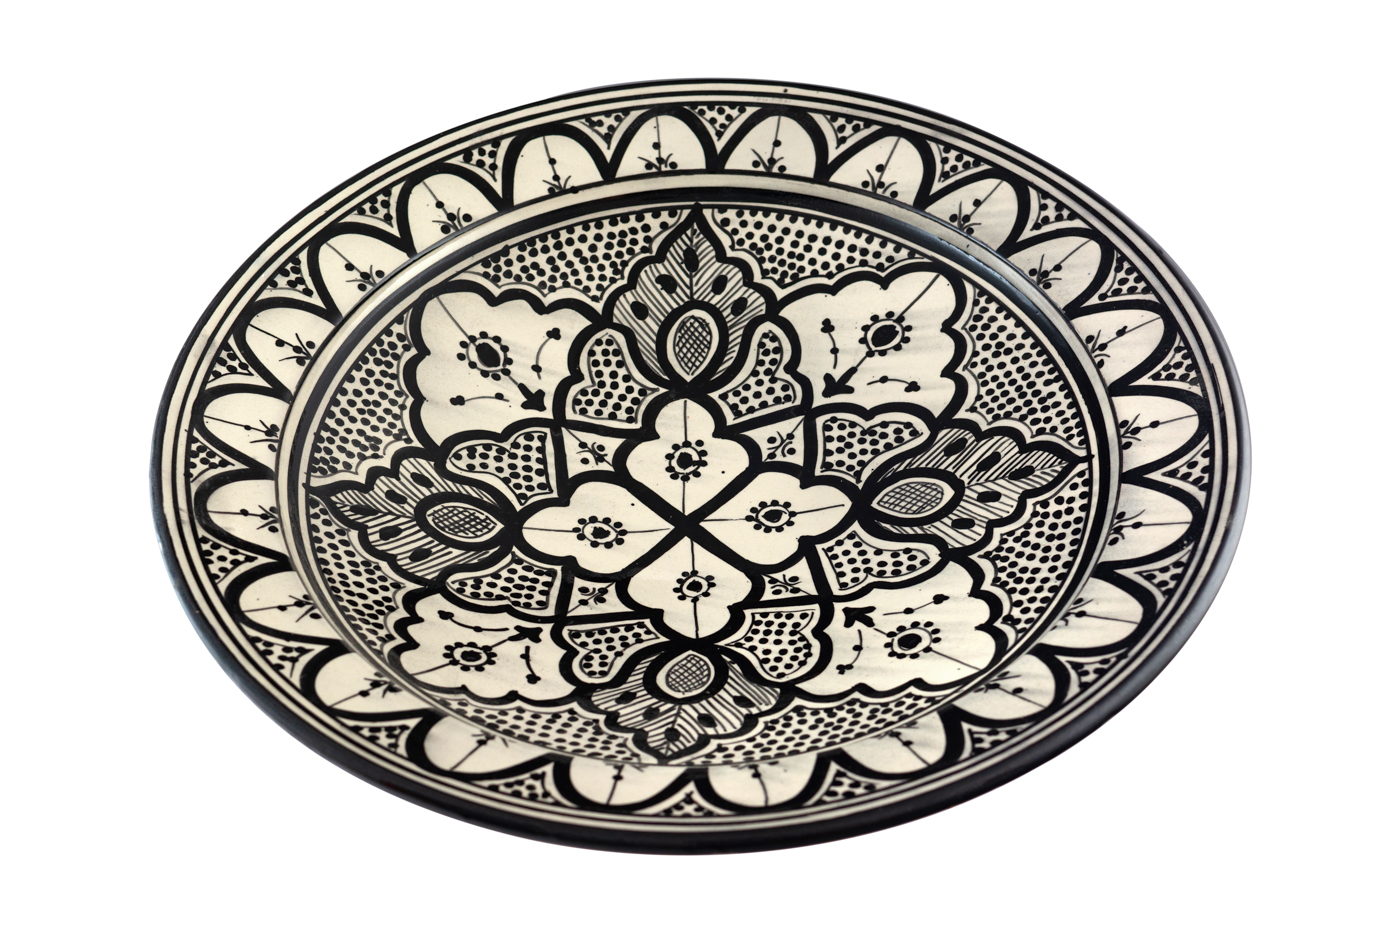 Moroccan painted ceramic dish with floral arabesque design-Black/white